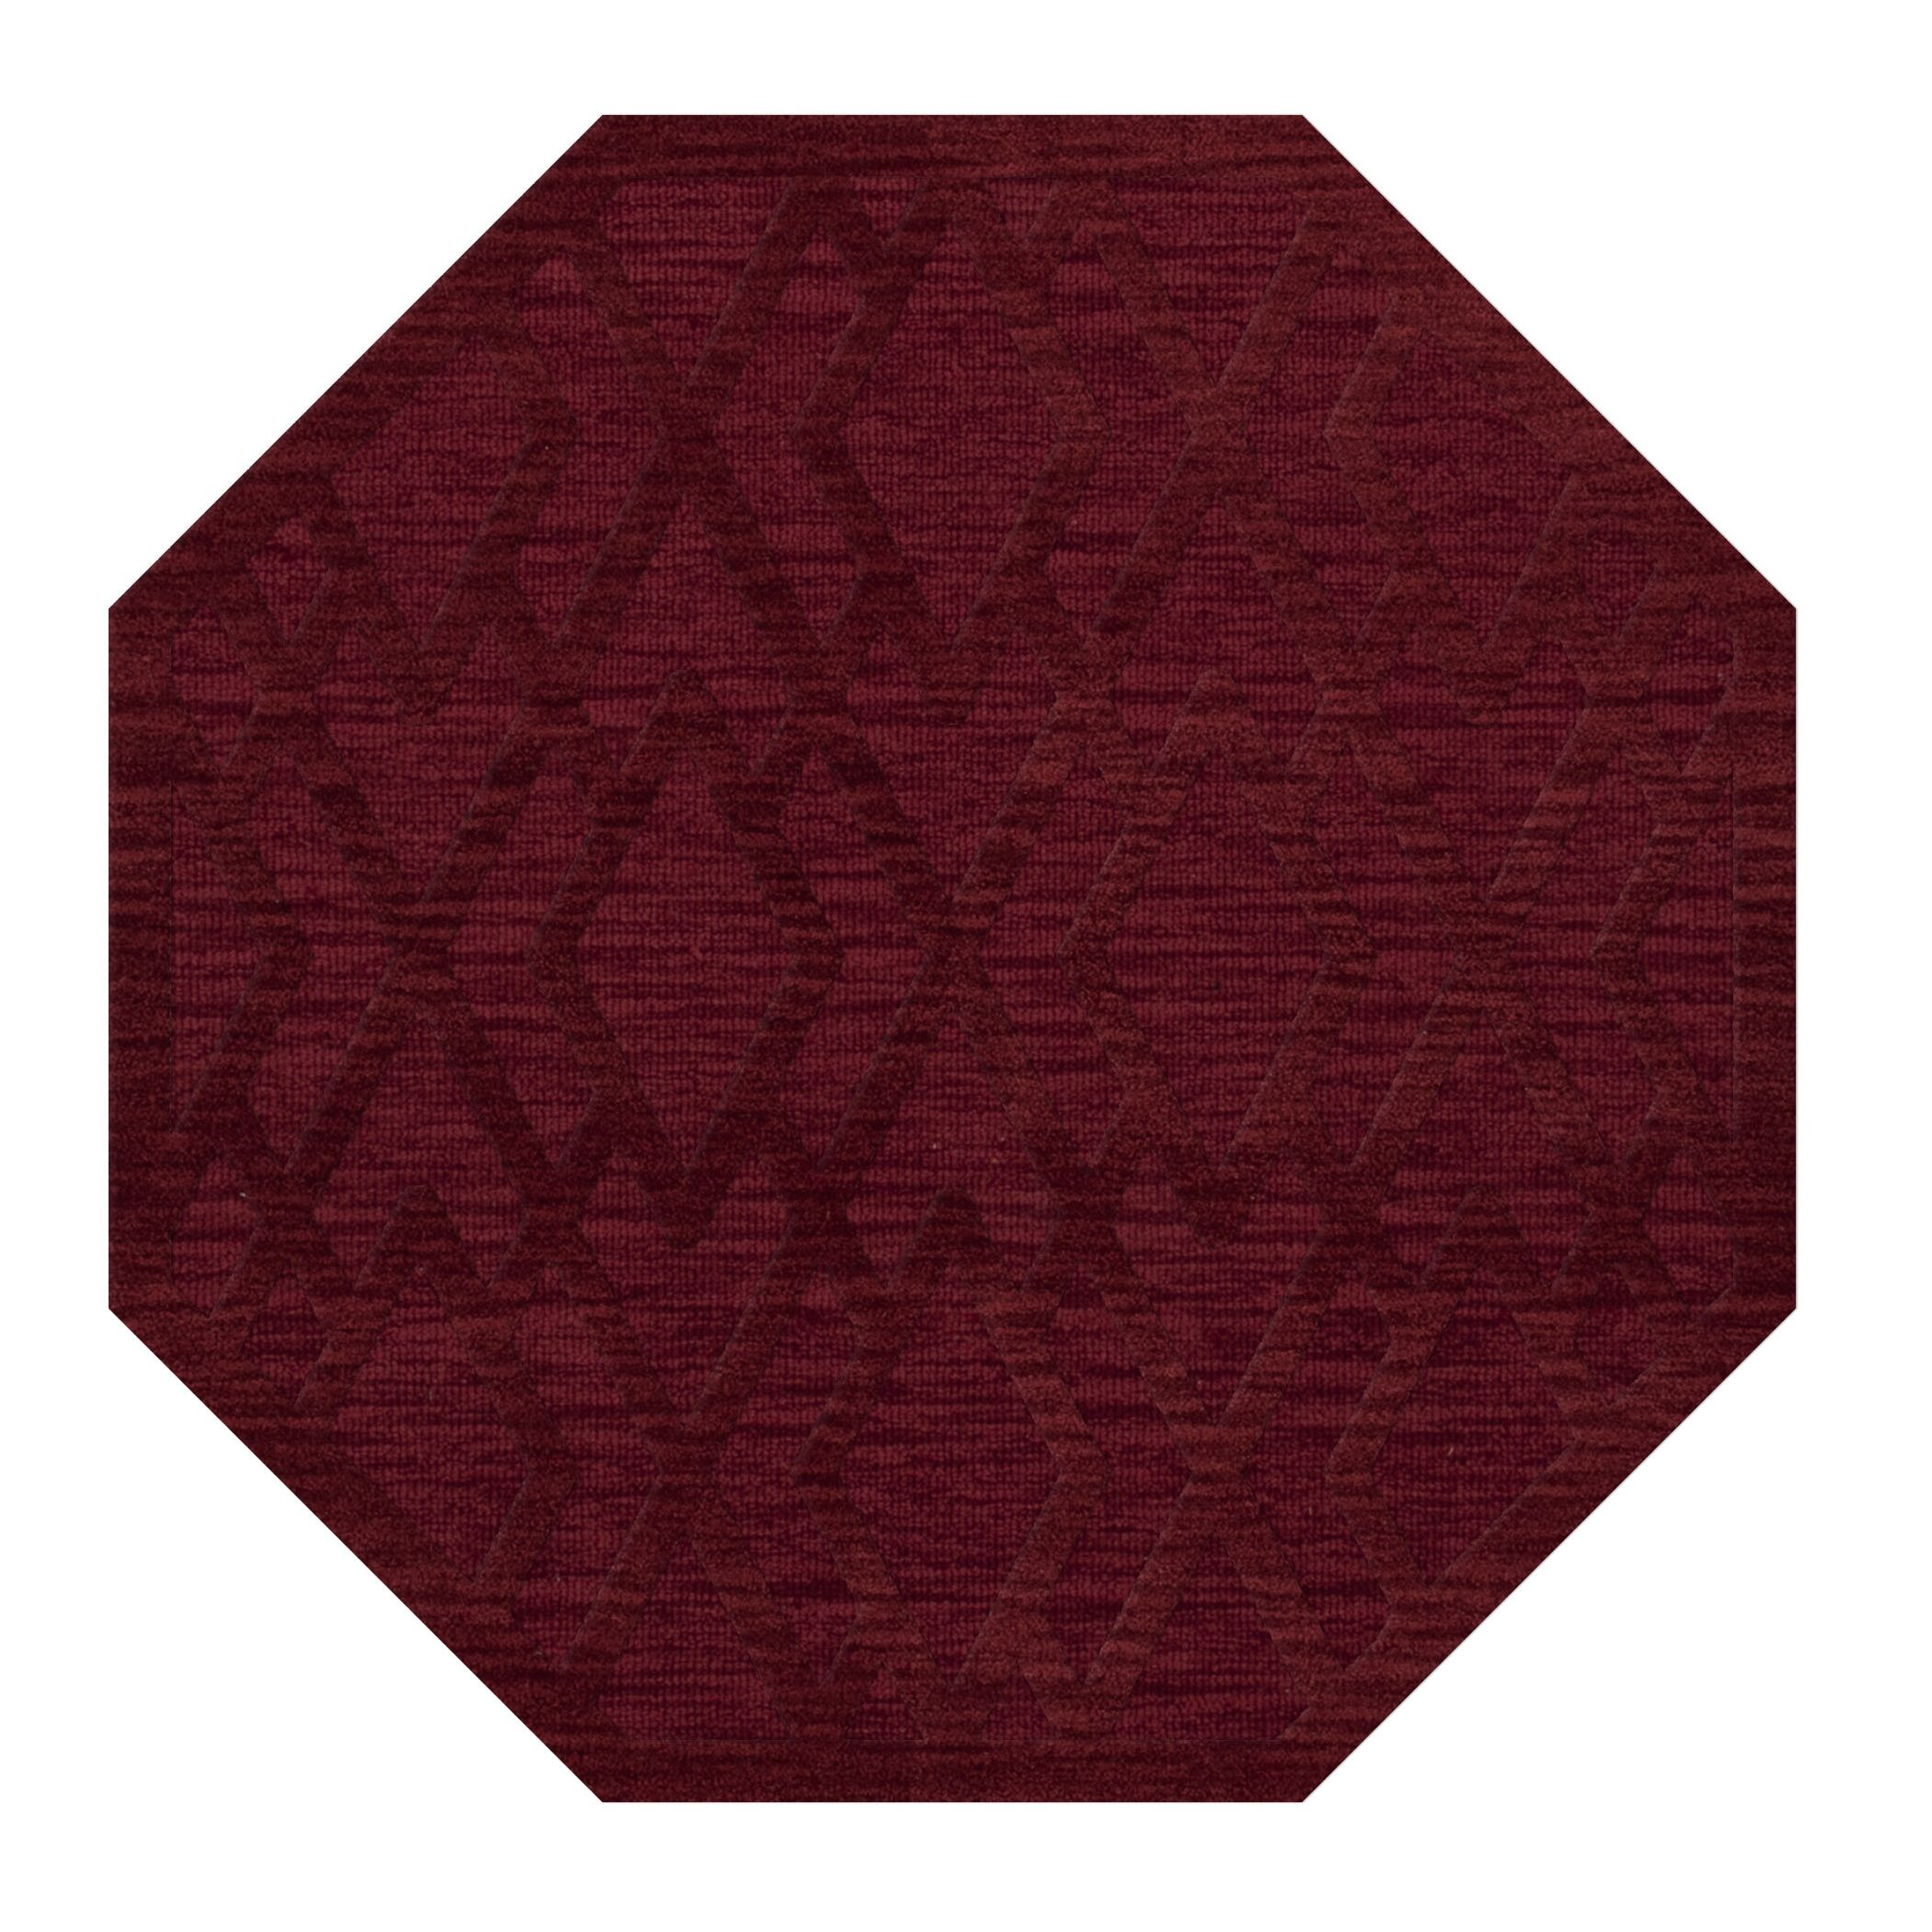 Dover Tufted Wool Rich Red Area Rug Rug Size: Octagon 6'